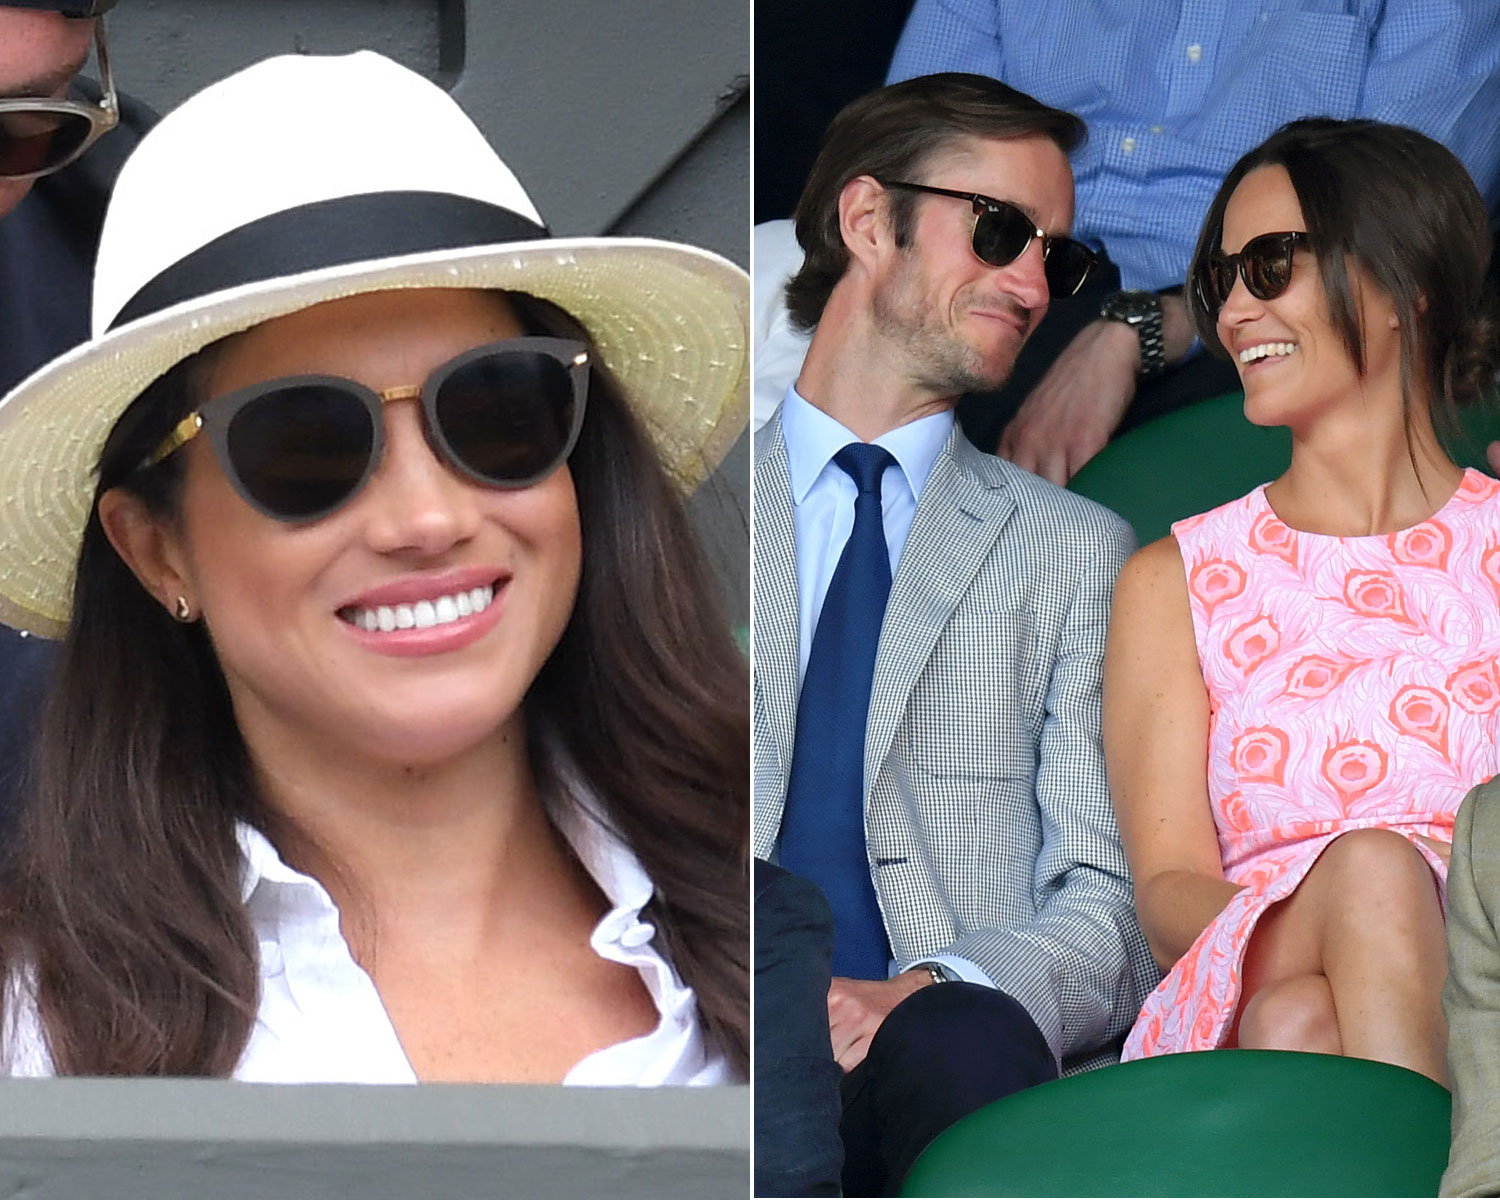 This is how Pippa Middleton compares to the average British bride